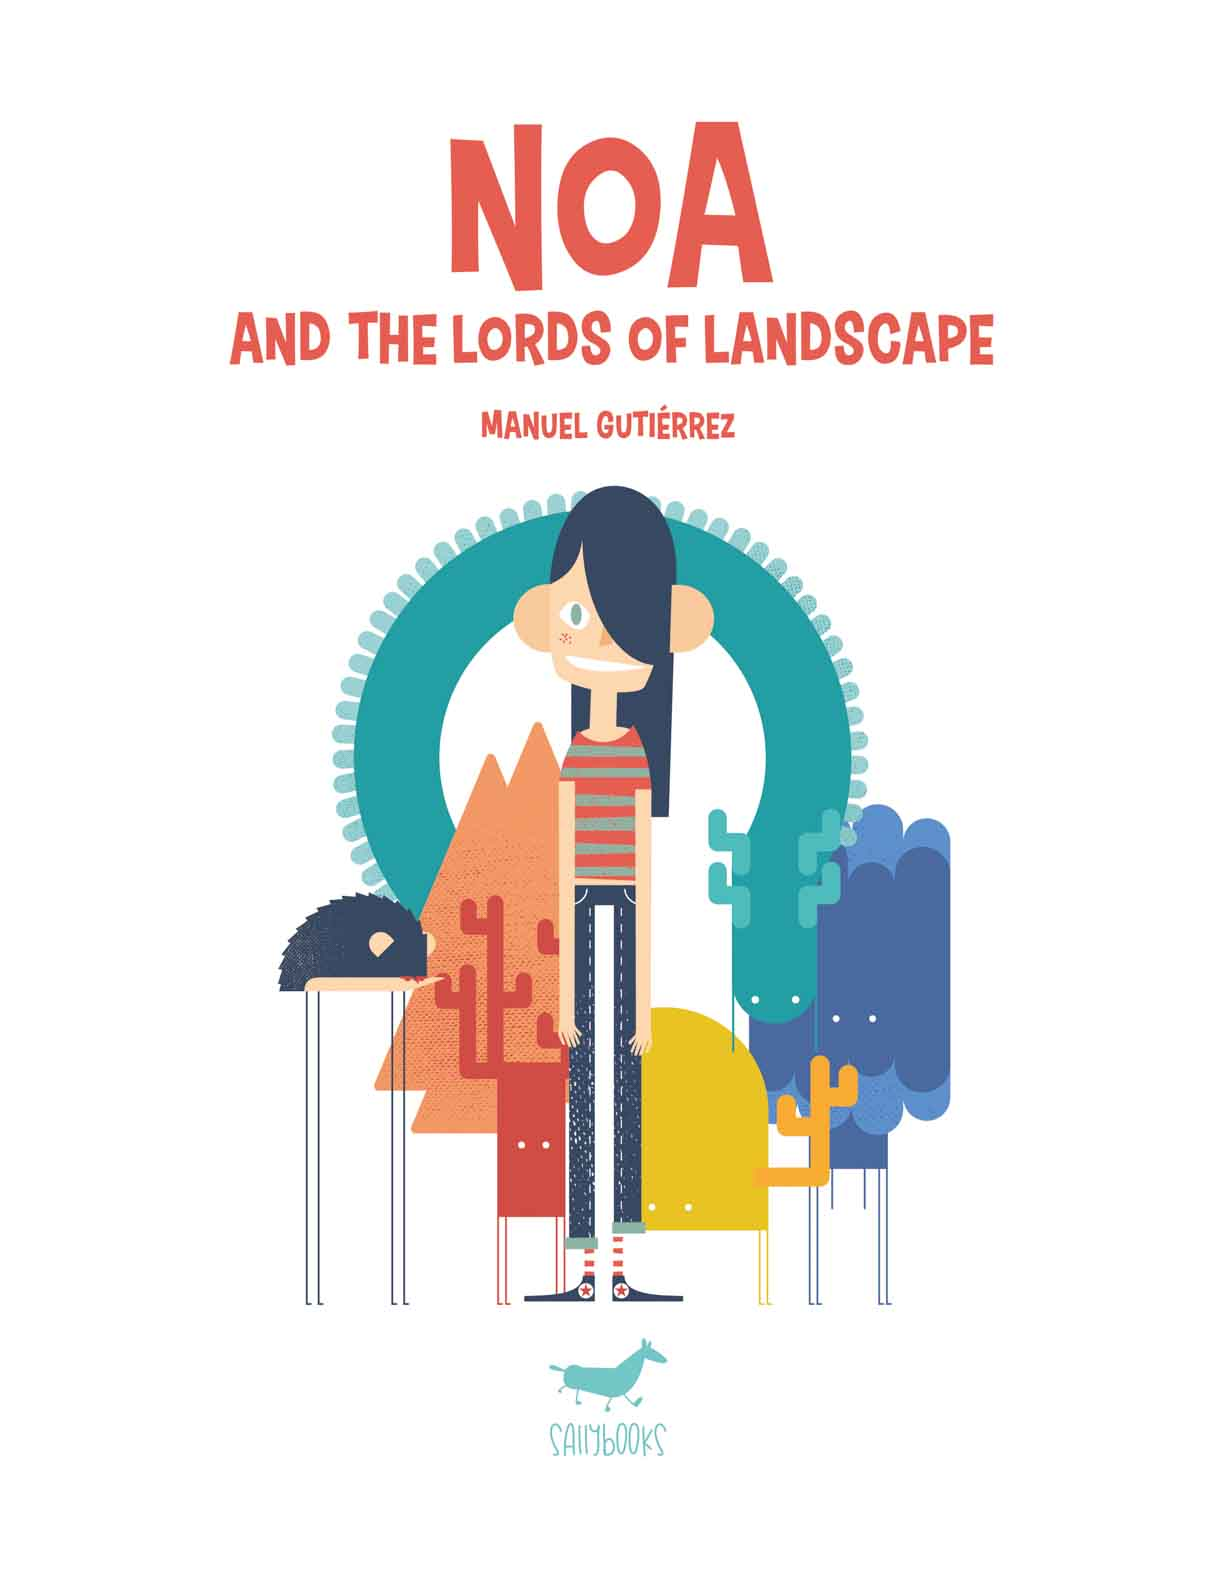 NOA AND THE LORDS OF LANDSCAPE